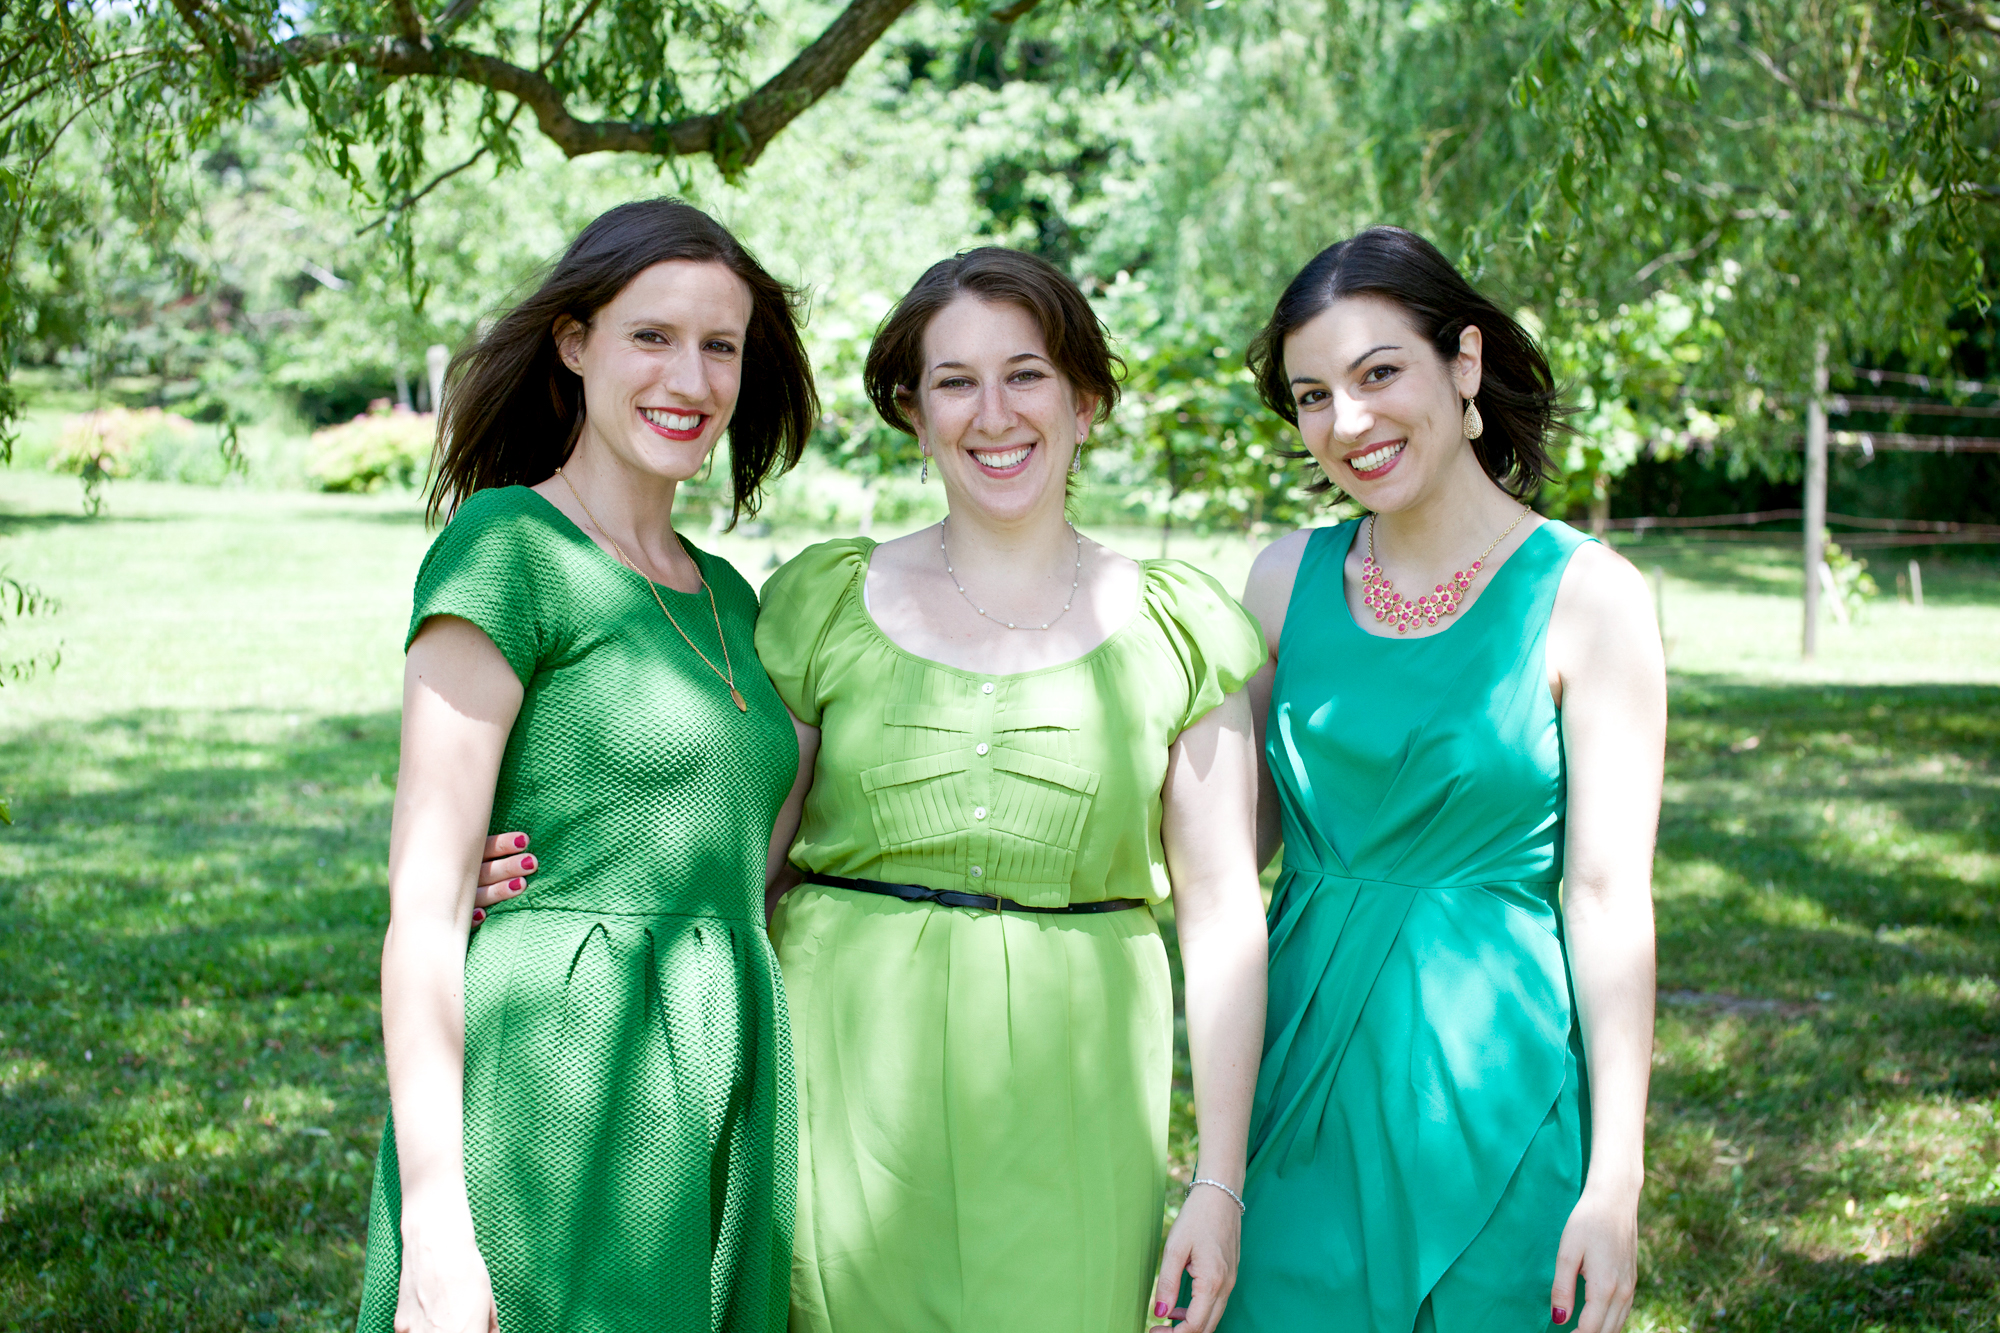 128_CarlyGaebe_SteadfastStudio_WeddingPhotography_NewYork_Ithaca_Winery_SixMileCreekVineyard_BridalParty_Bridesmaids_MaidofHonor.jpg